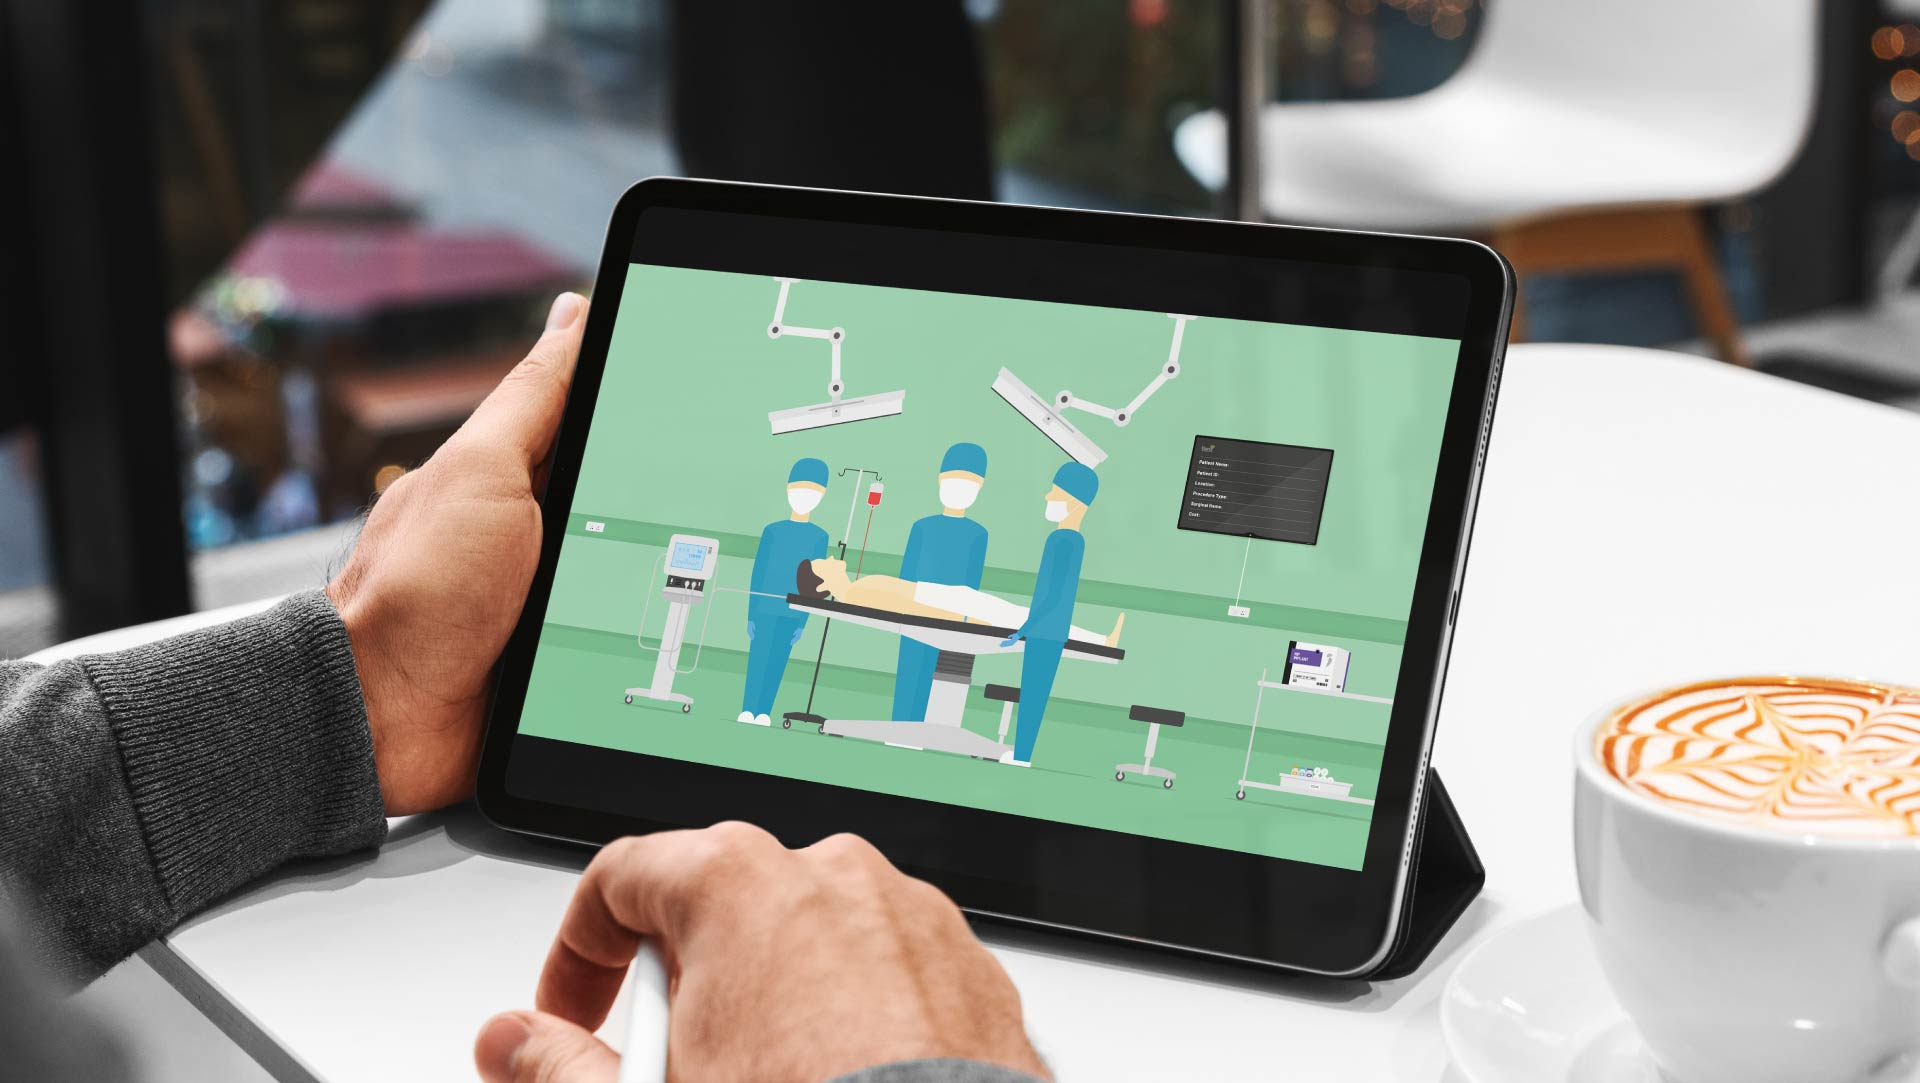 Eleanor Healthcare Brand illustration and logistics animation on a tablet device.